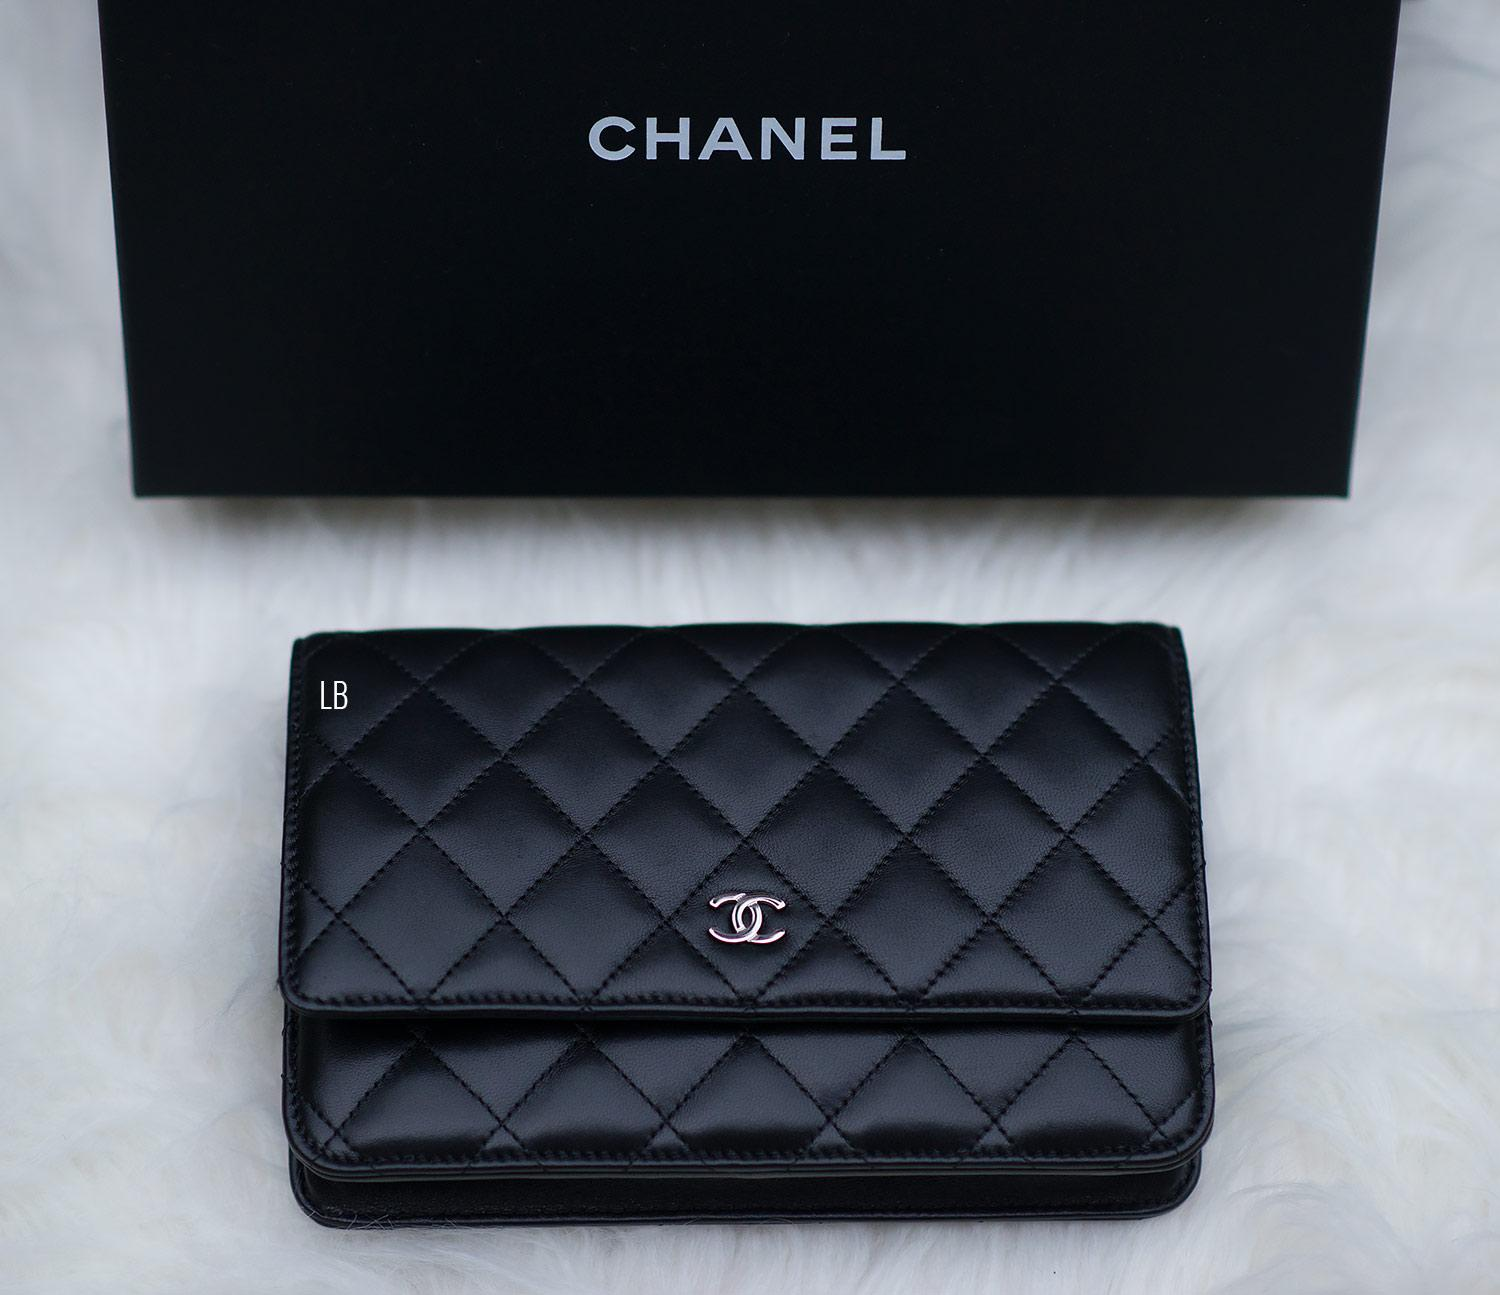 My New Chanel Wallet On Chain 'WOC' Bag In Black ...